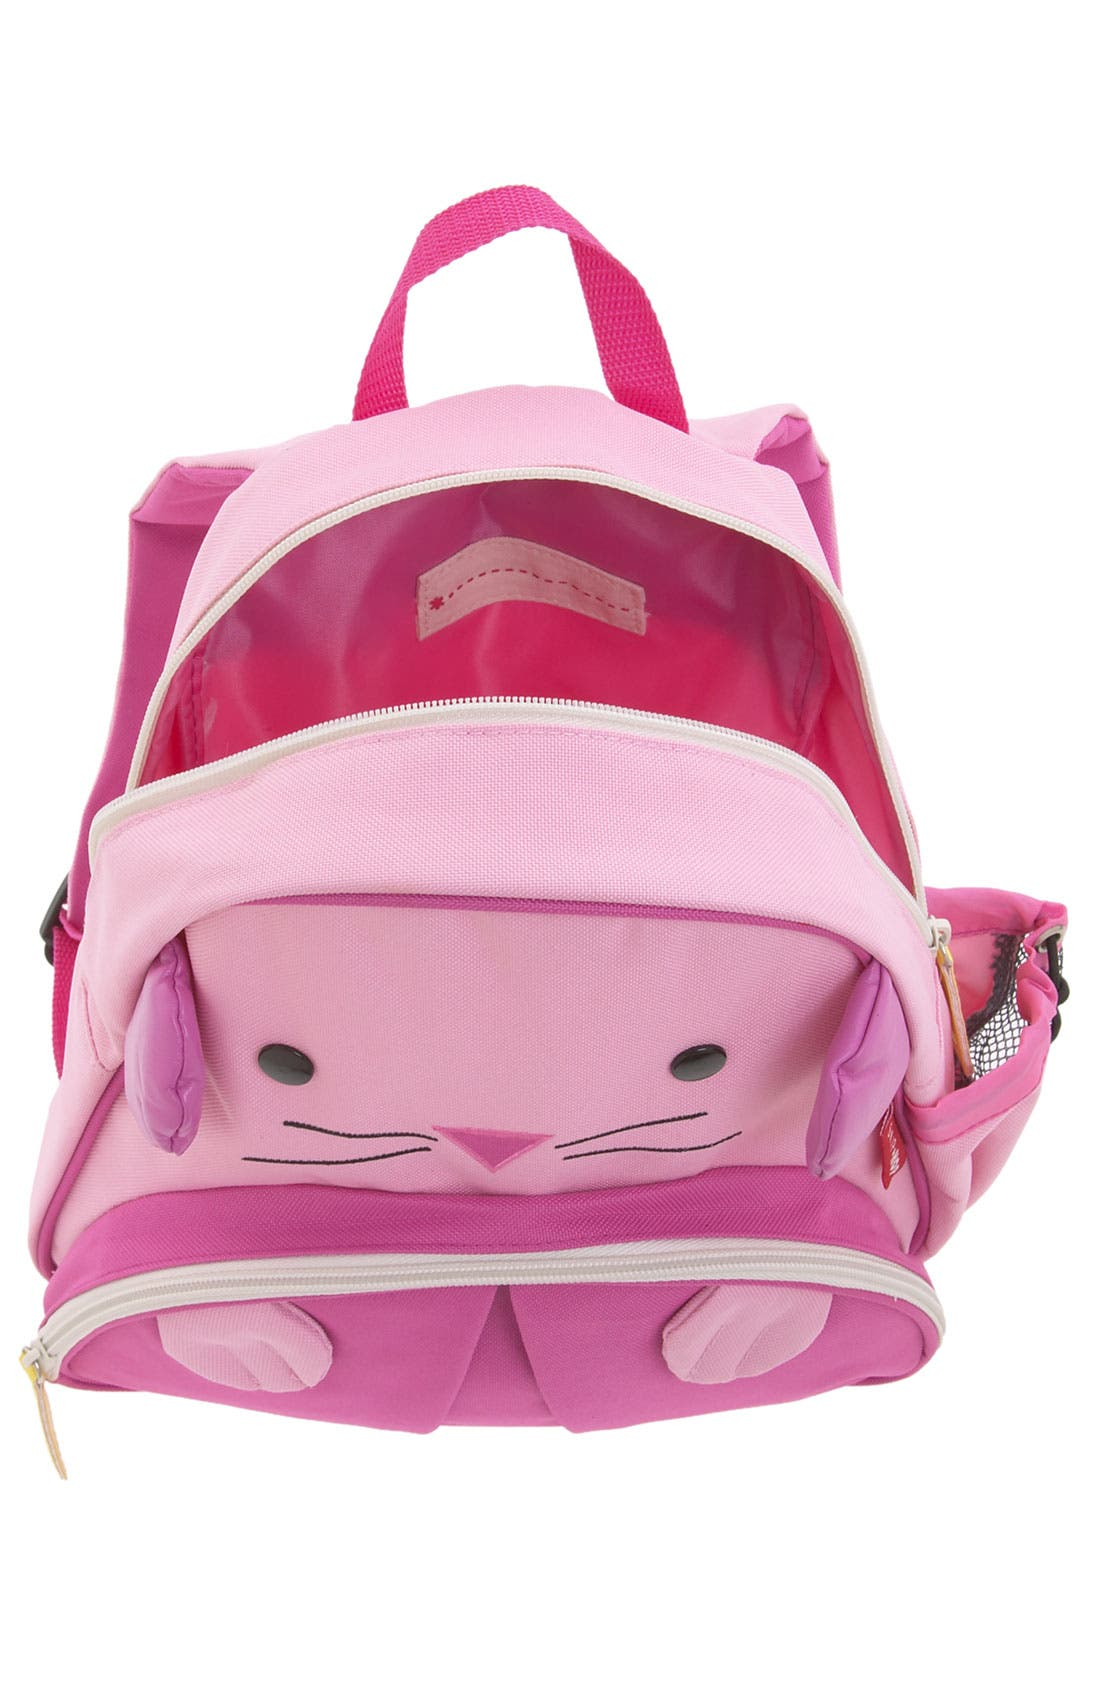 Zoo Pack Backpack,                             Alternate thumbnail 91, color,